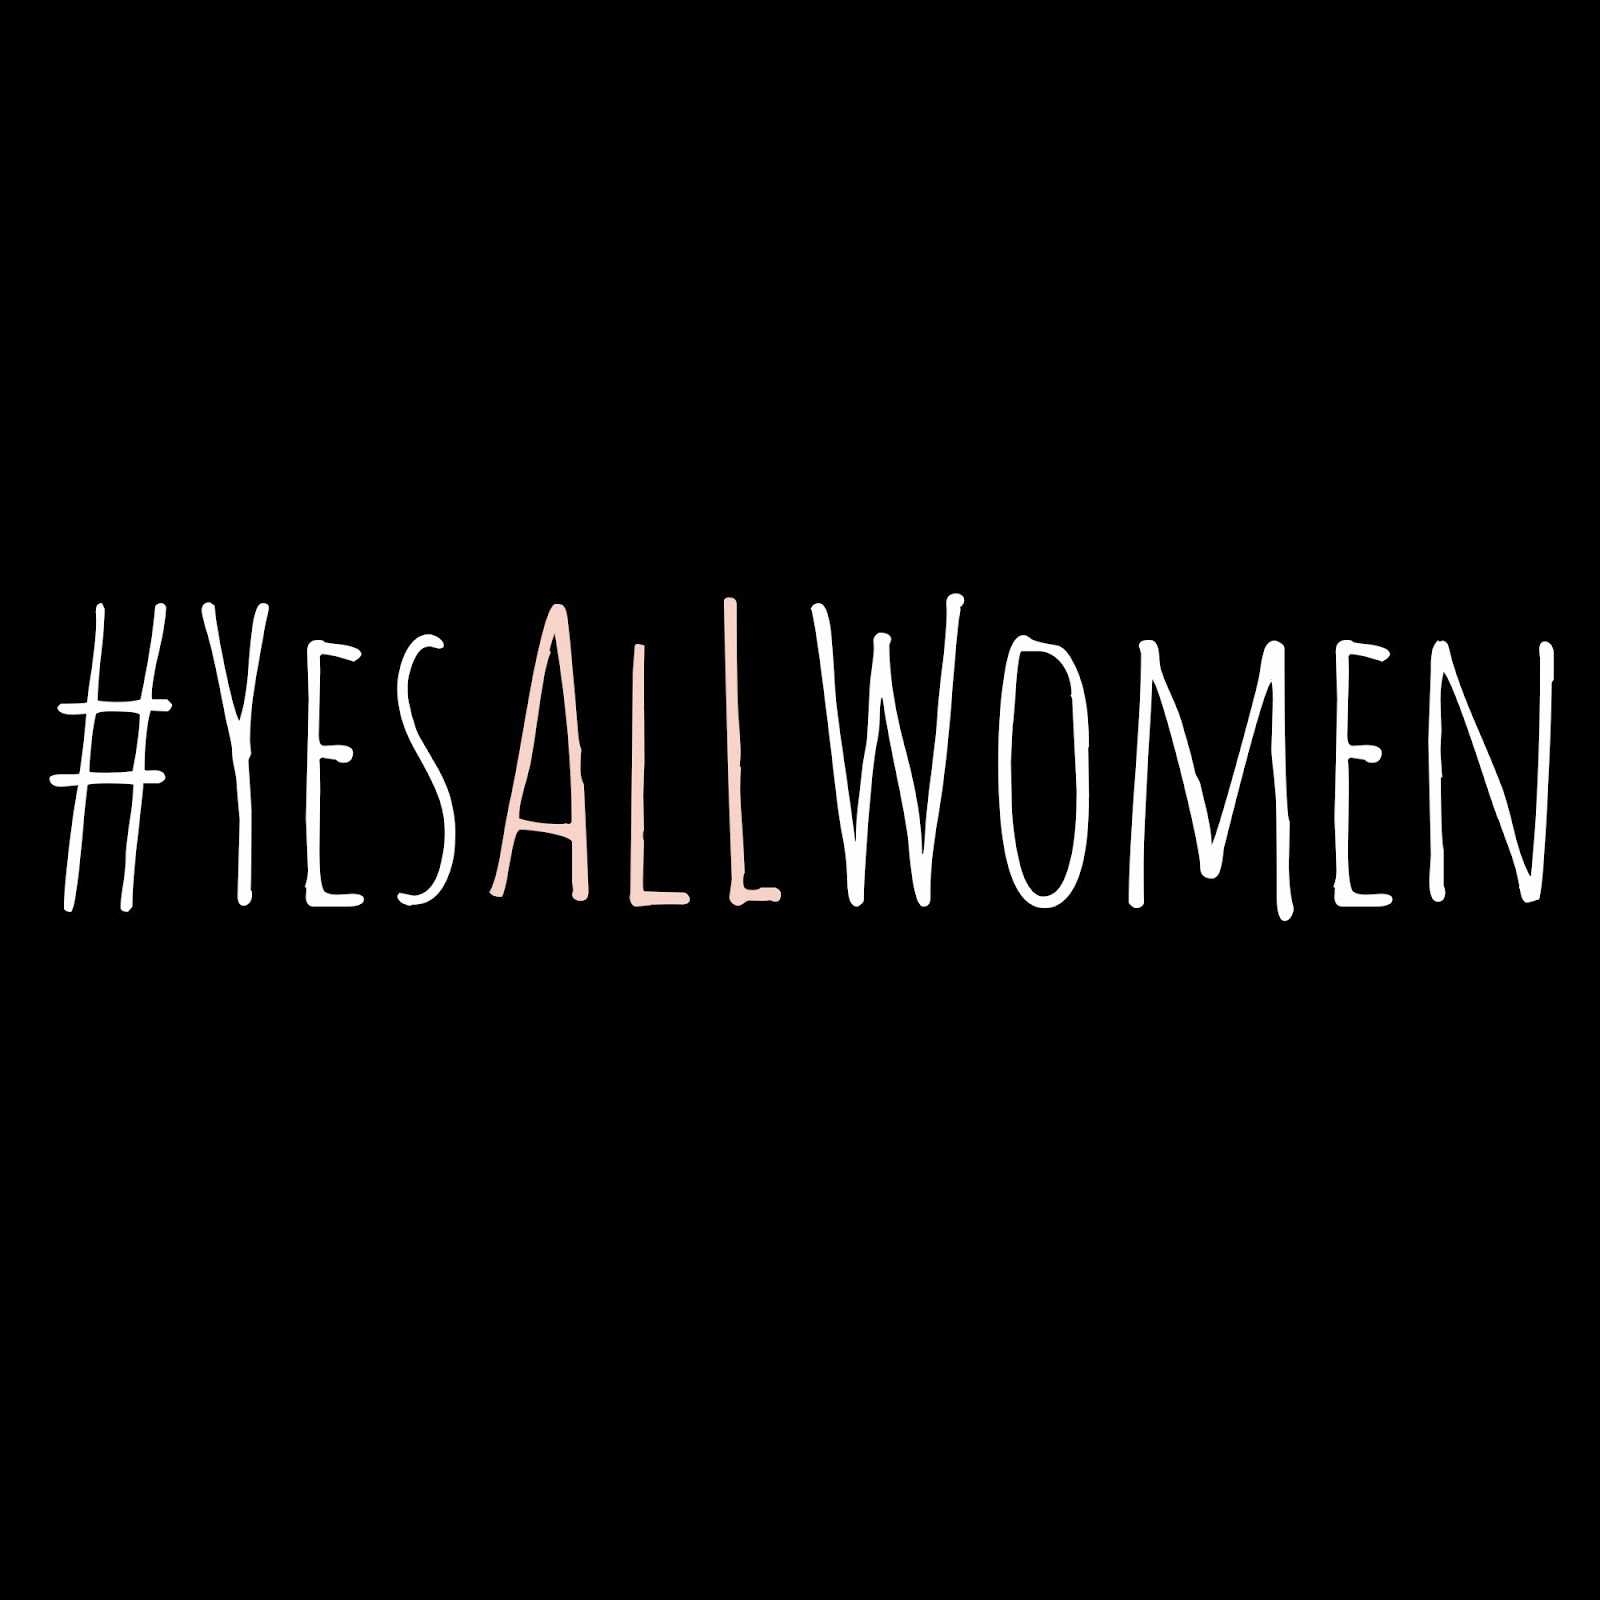 #YesAllWomen: A Straight, Conservative Male's Thoughts On Why This Campaign Is So Important